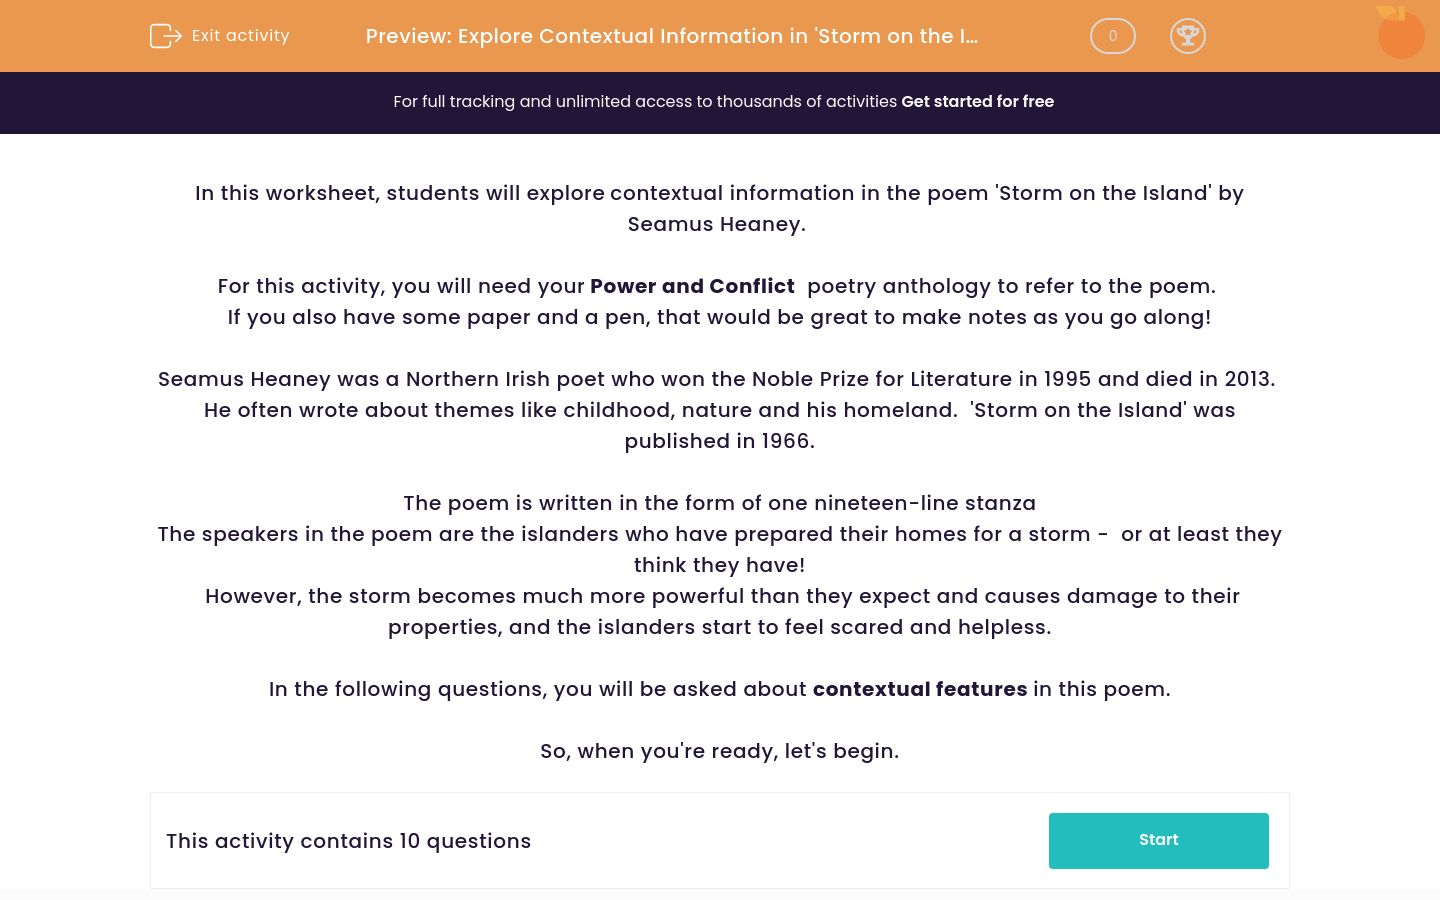 'Explore Contextual Information in 'Storm on the Island' by Seamus Heaney' worksheet